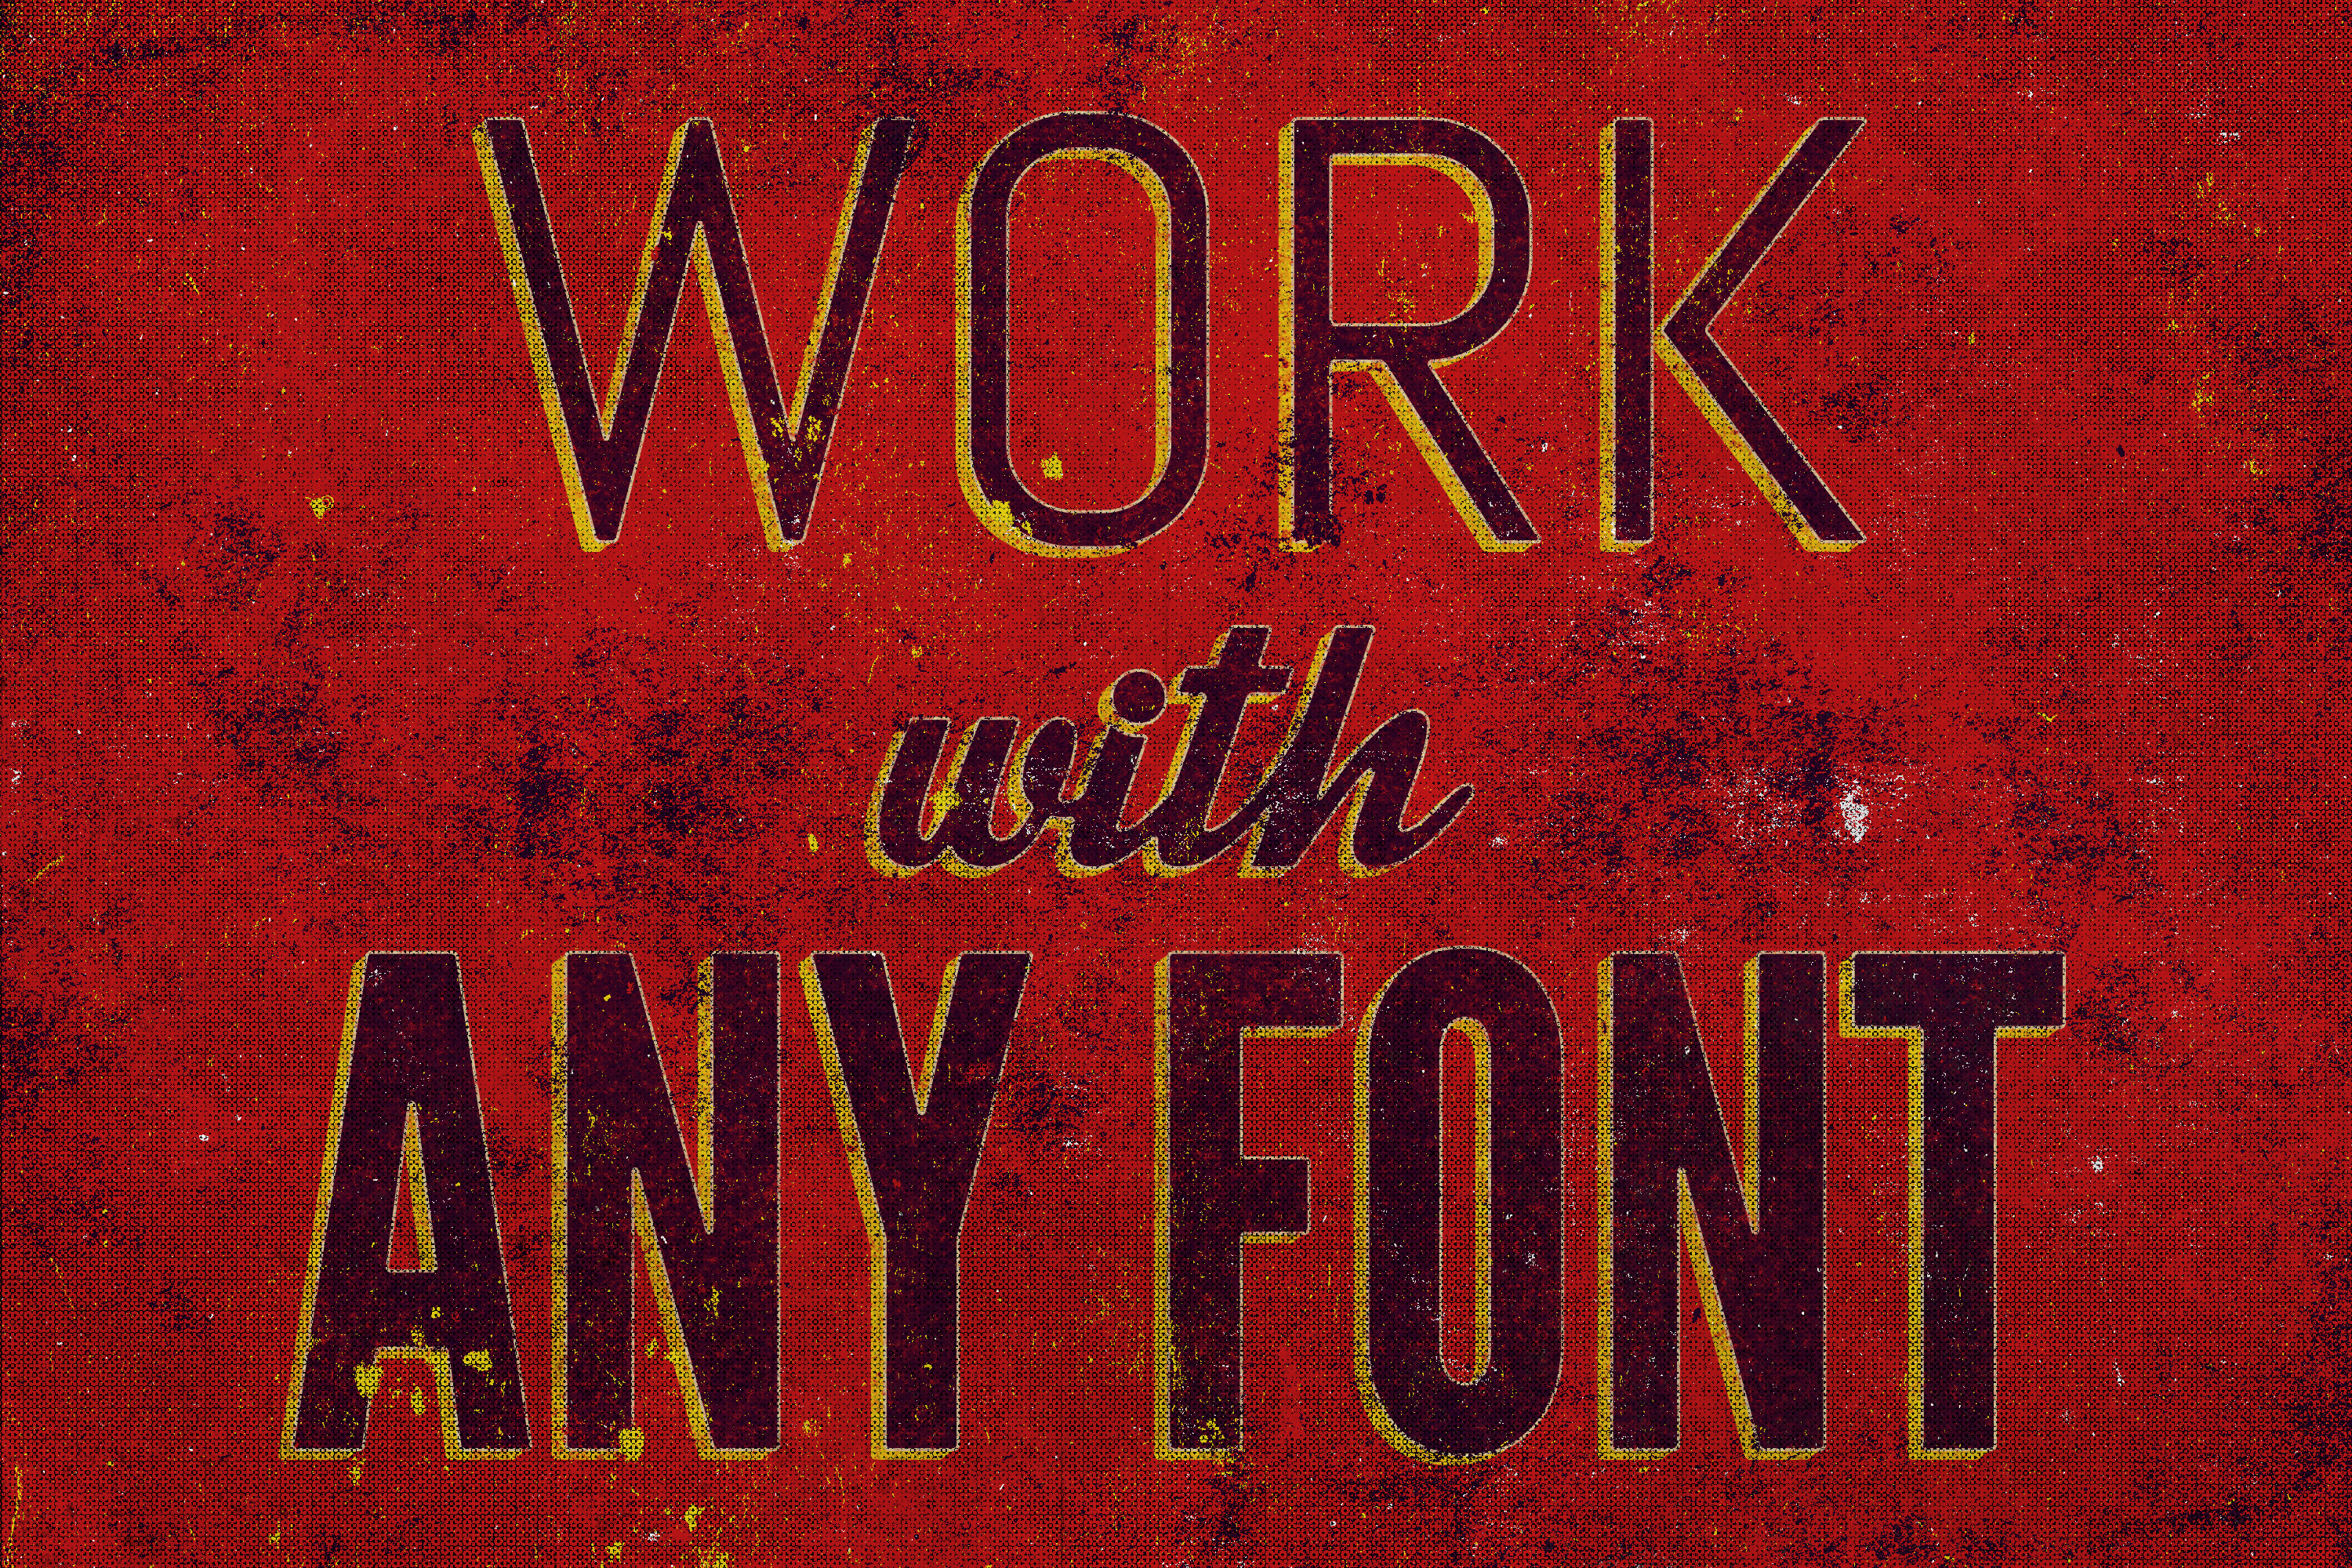 Grunge - Vintage Text Effect example image 6